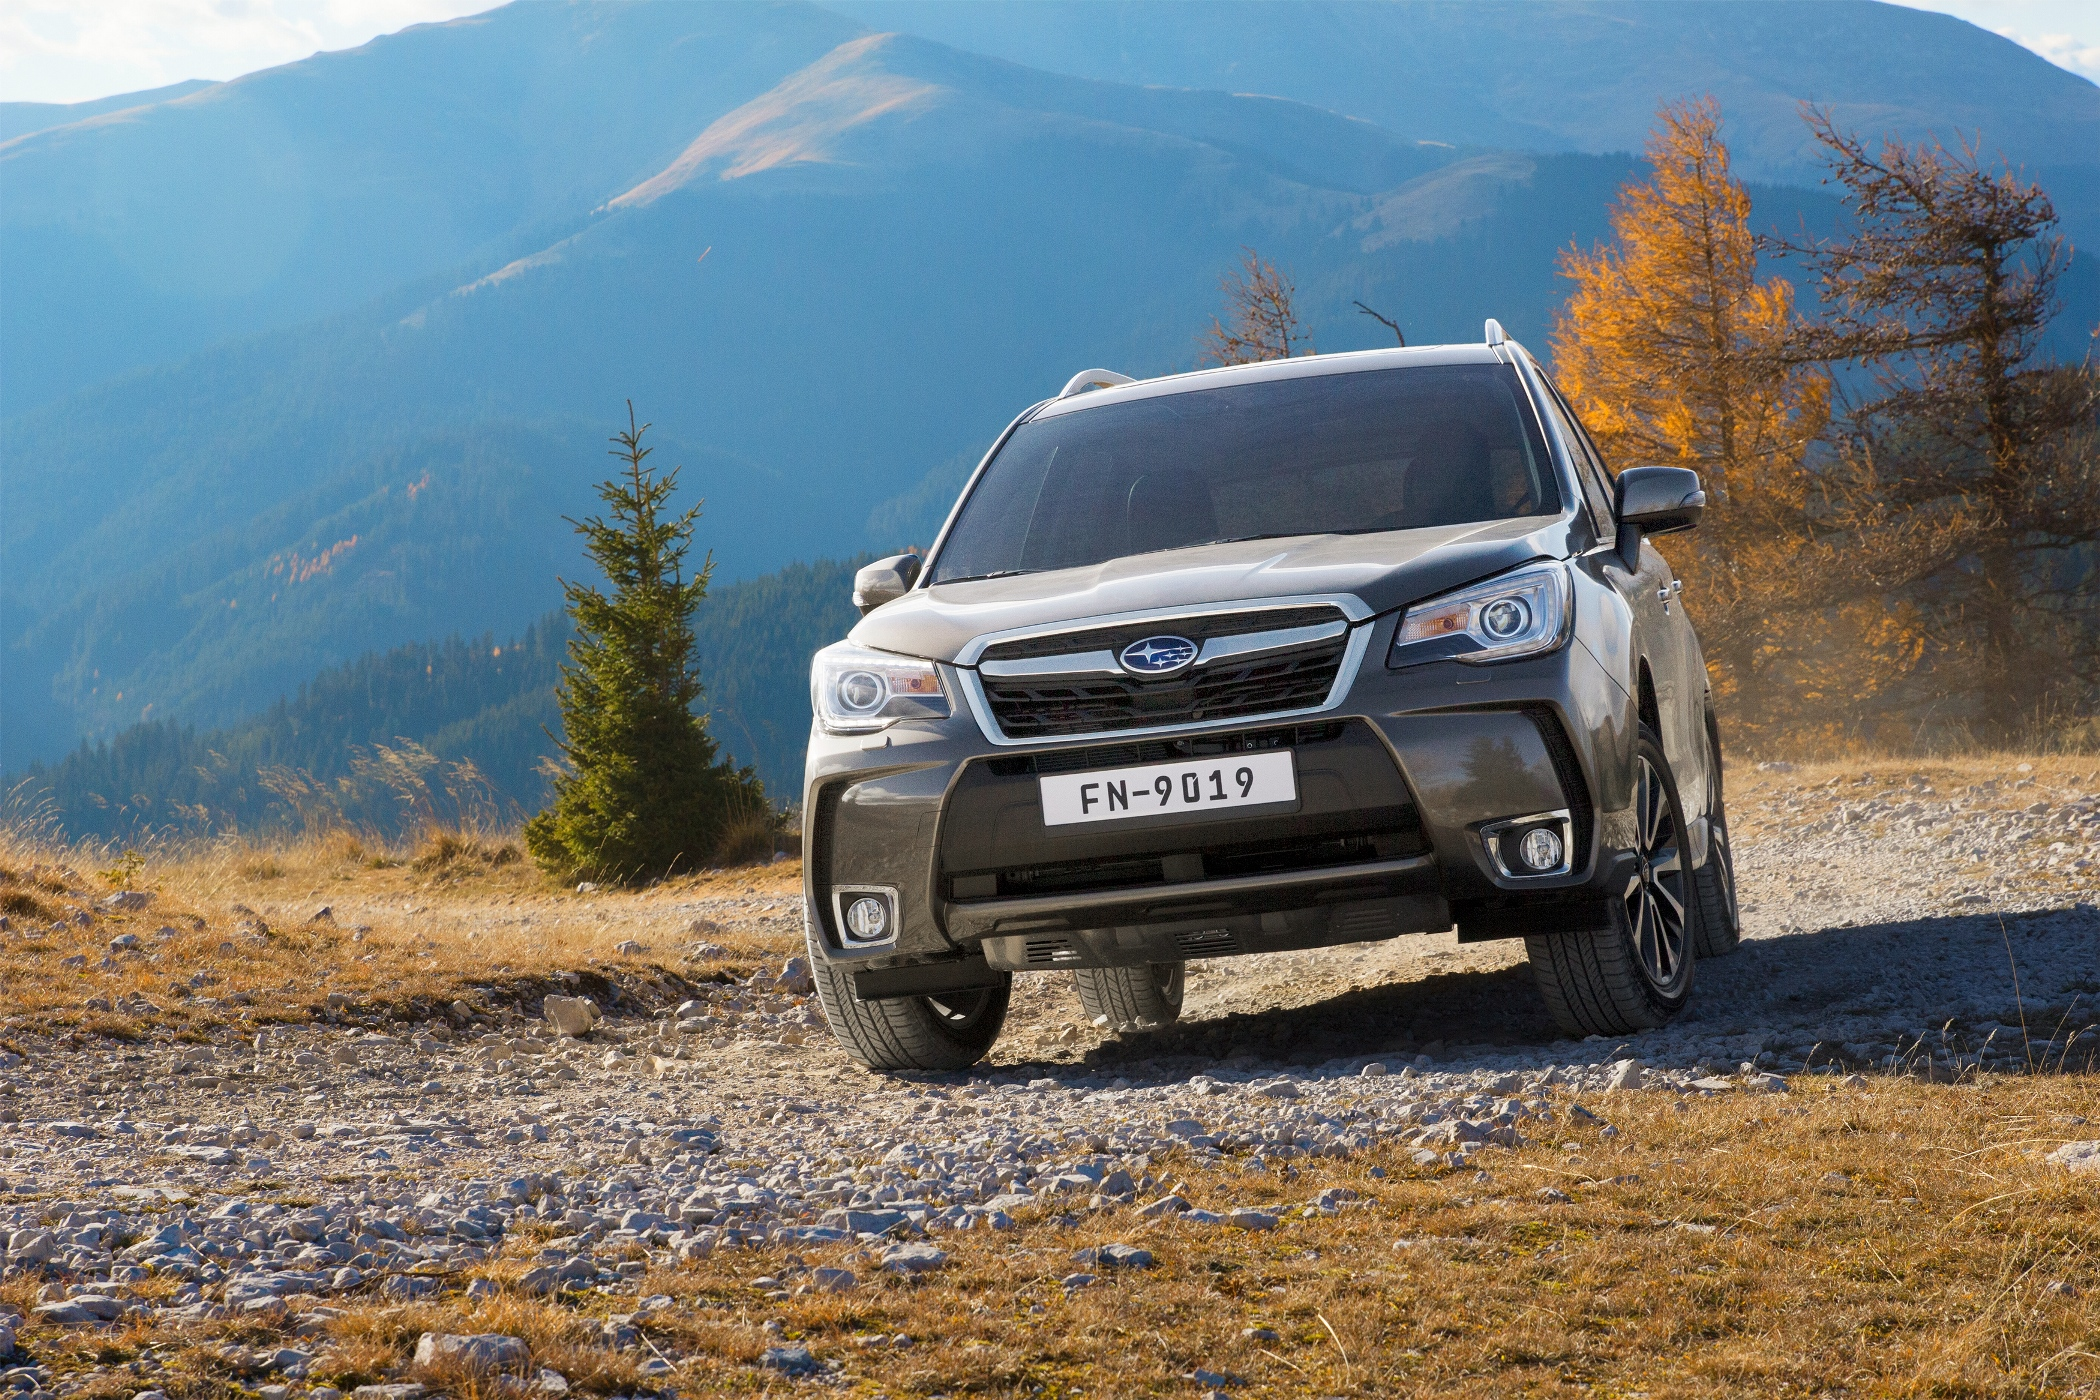 2100x1400 - Subaru Forester Wallpapers 27